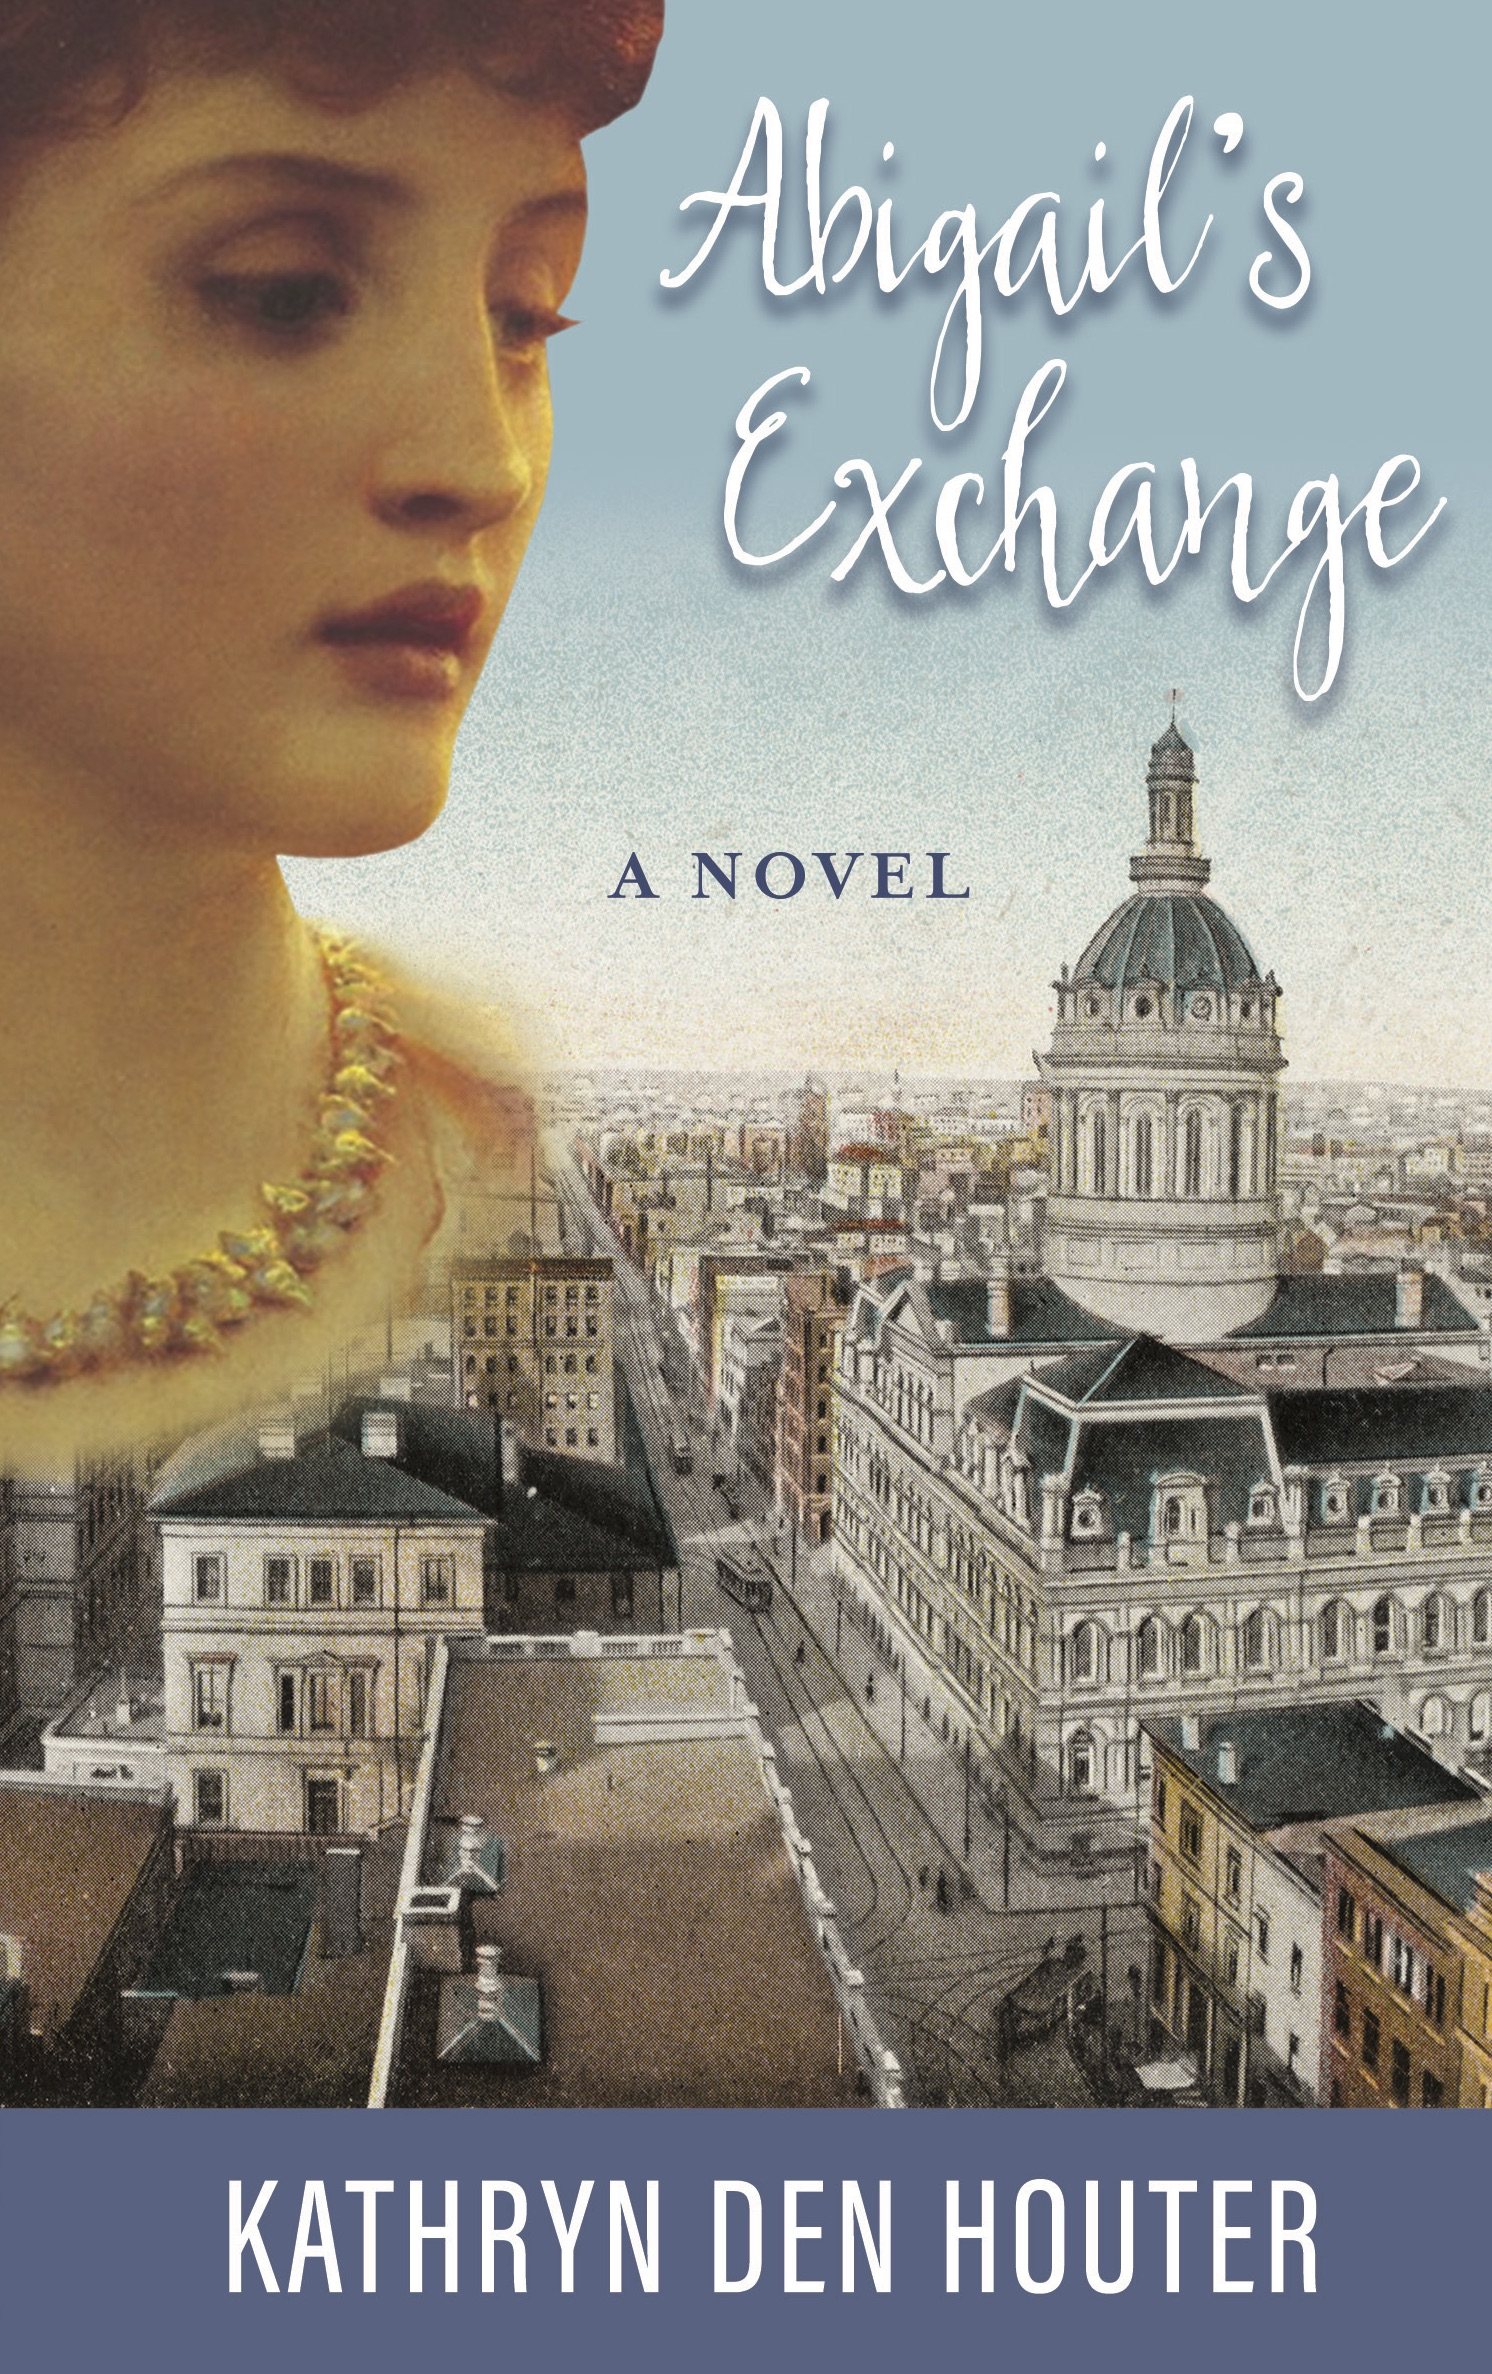 - Abigail's Exchange is the inspiring story of a young lady who comes of age in the late 1800s in Baltimore, Maryland. Raised to own and manage a candy shop, which is left in her hands following tragedy, she struggles with her career and her wedding vows when she finds herself locked in the stranglehold of a difficult marriage. In Abigail's life, the reversals of fortune continually strike suddenly and unexpectedly, and at her lowest point, she watches her good intentions turn into unspeakable calamity. But, this is not the end of the story, for there is yet another reversal – a final, terrific tale of bravery, shrewdness, and unfaltering resilience. This story will resonate with women and men who are trying to navigate through real life with grace and honor.Buy the book on Amazon